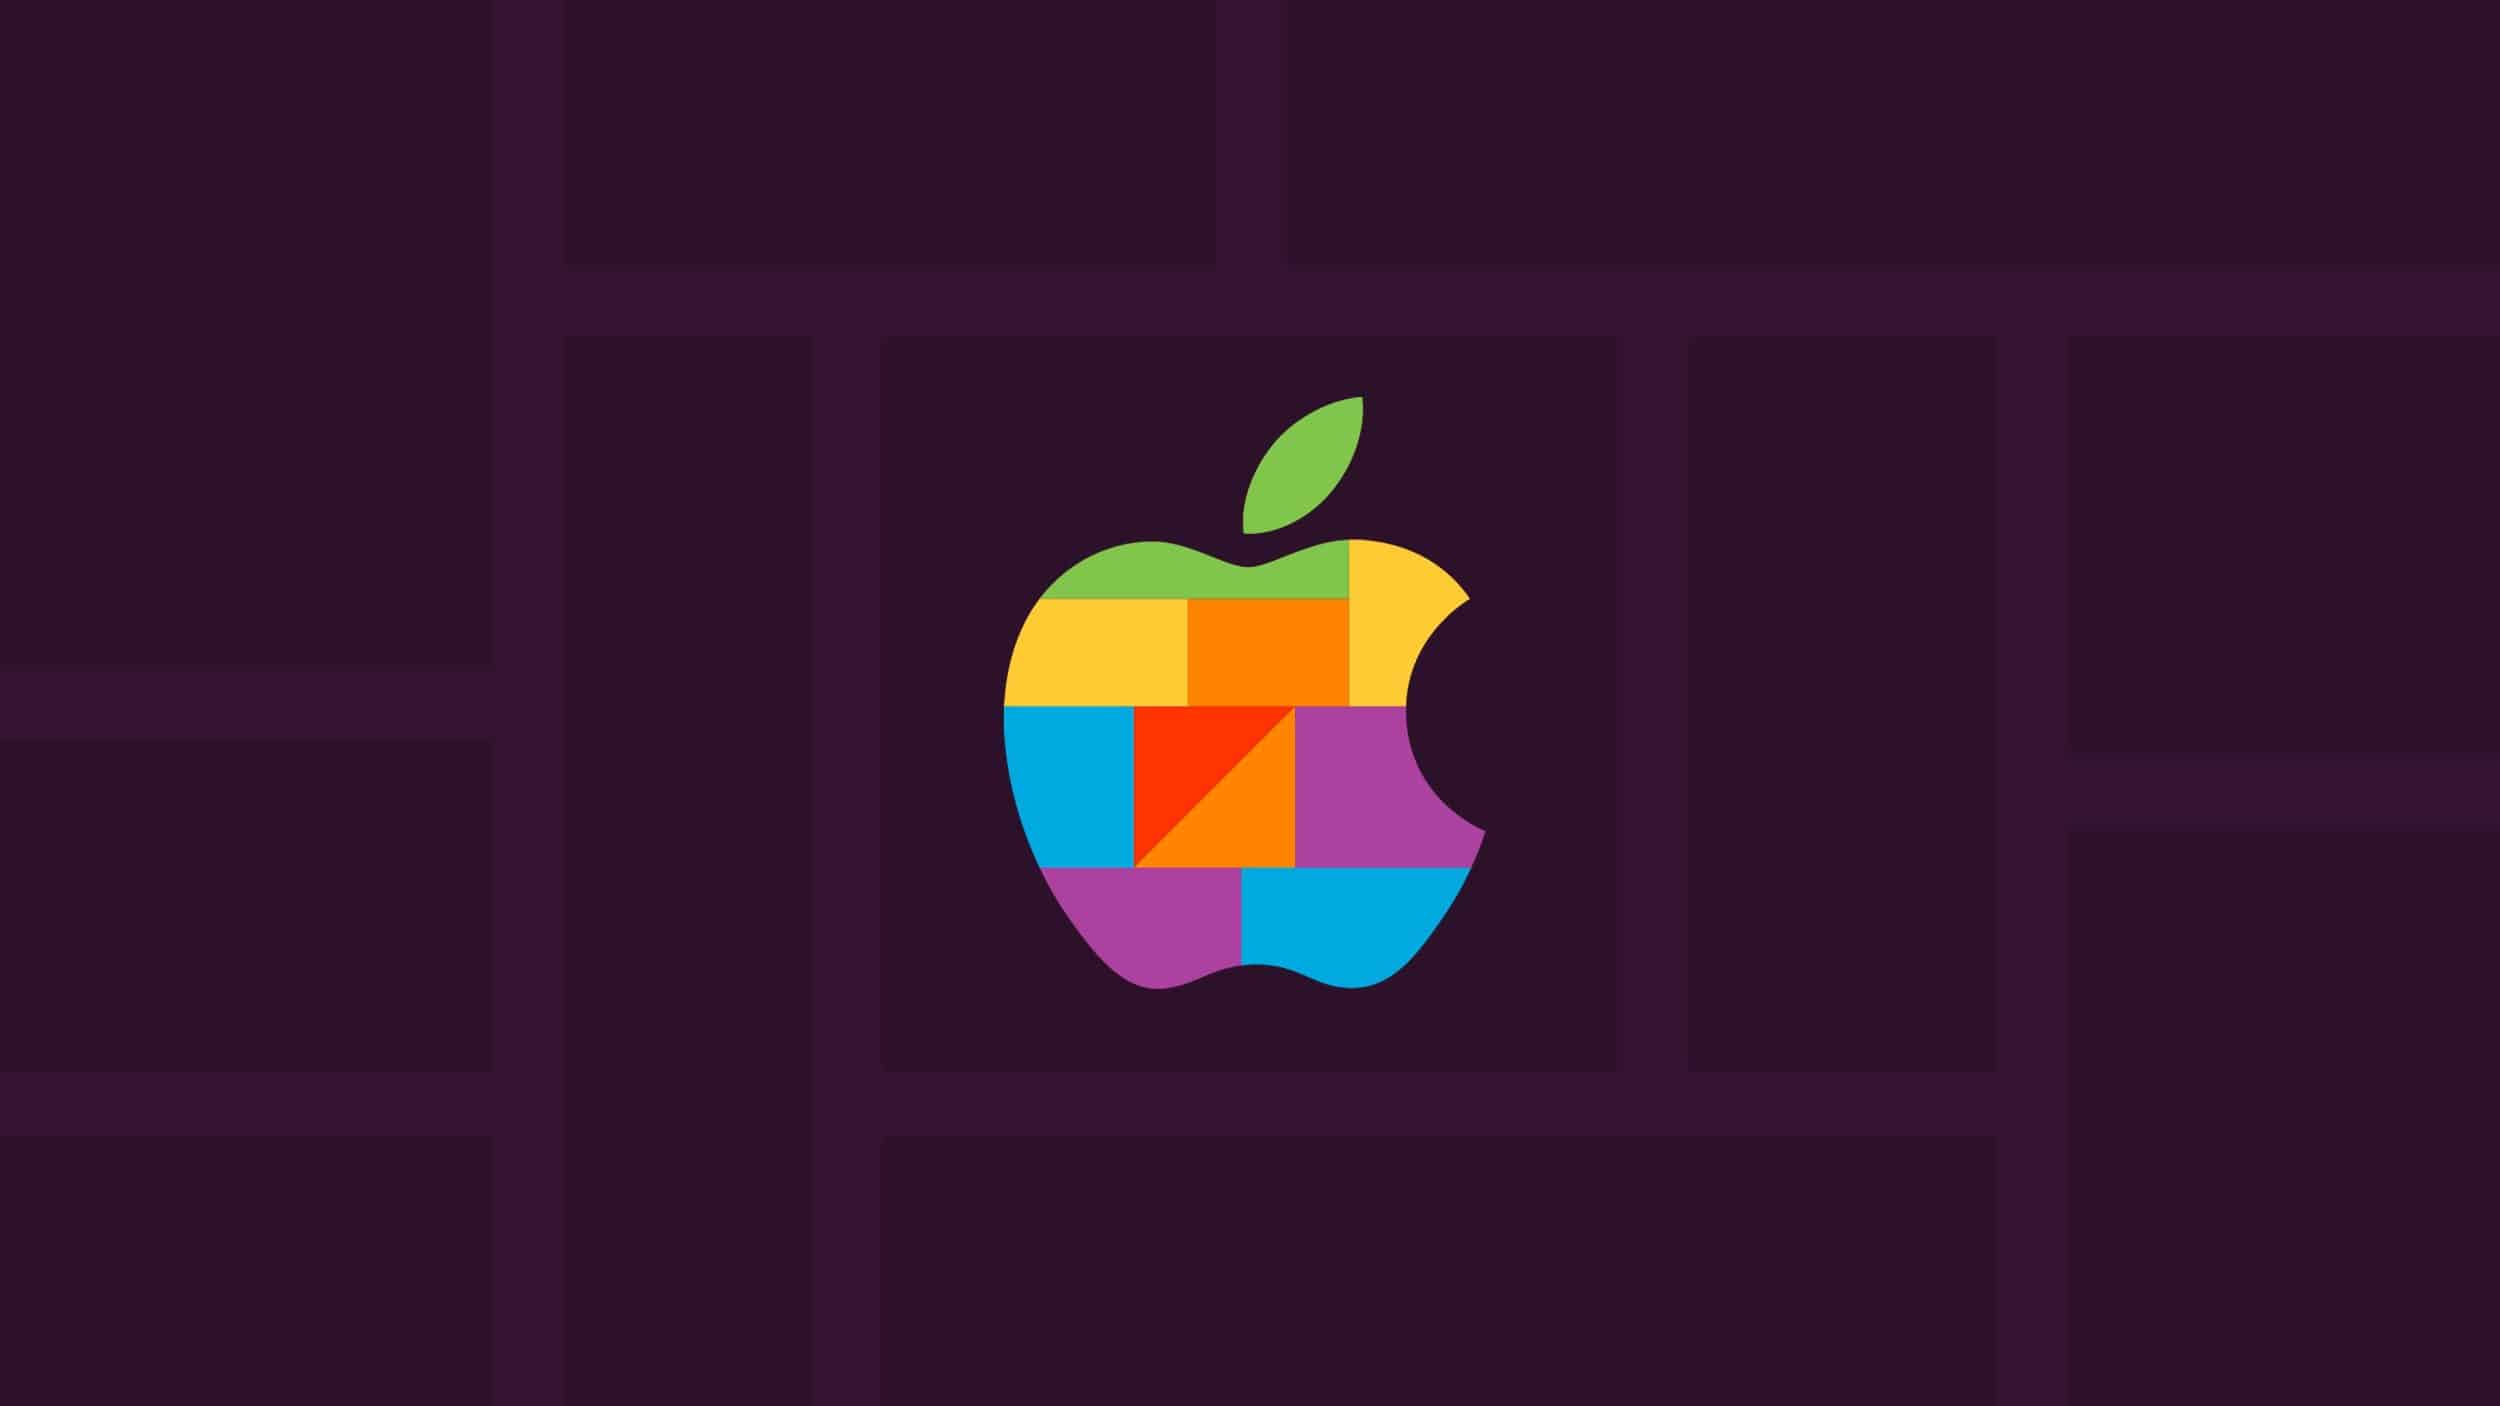 This is the Apple Kawasaki Store logo in Japan.